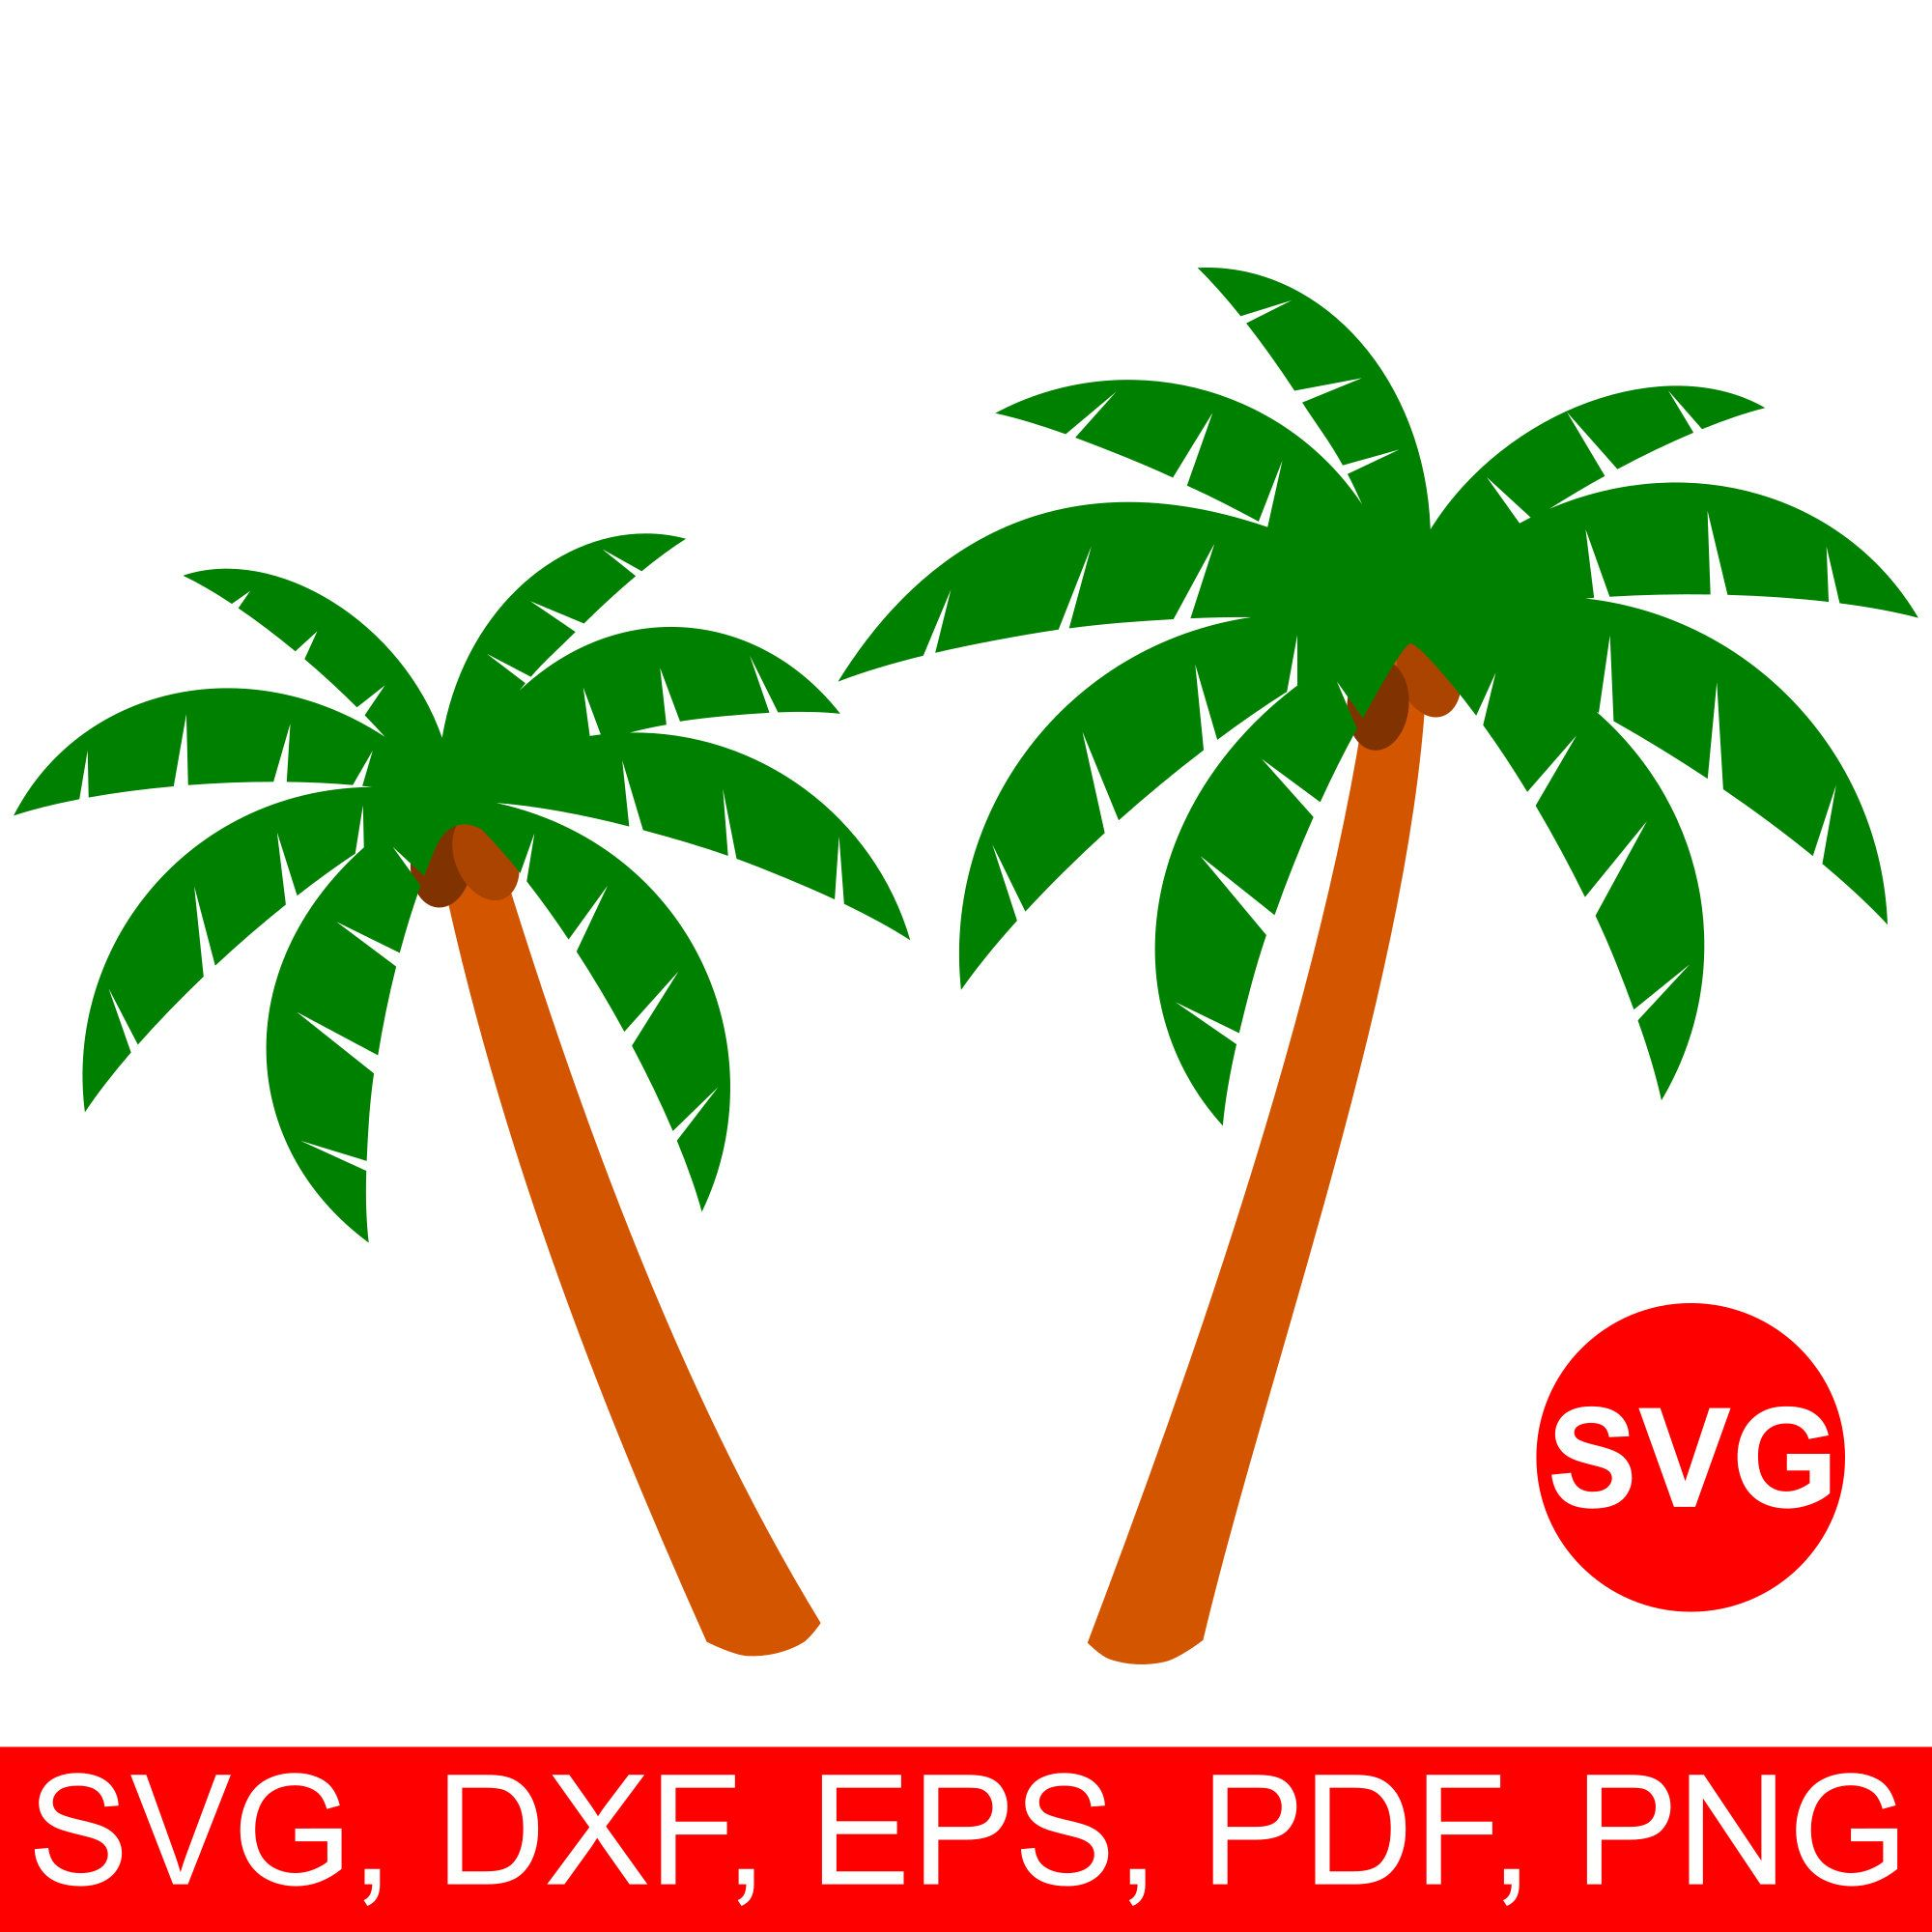 Palm tree clipart for cricut explore air 2 vector transparent download Palm tree SVG fie for Cricut and Silhouette, #summer clipart ... vector transparent download